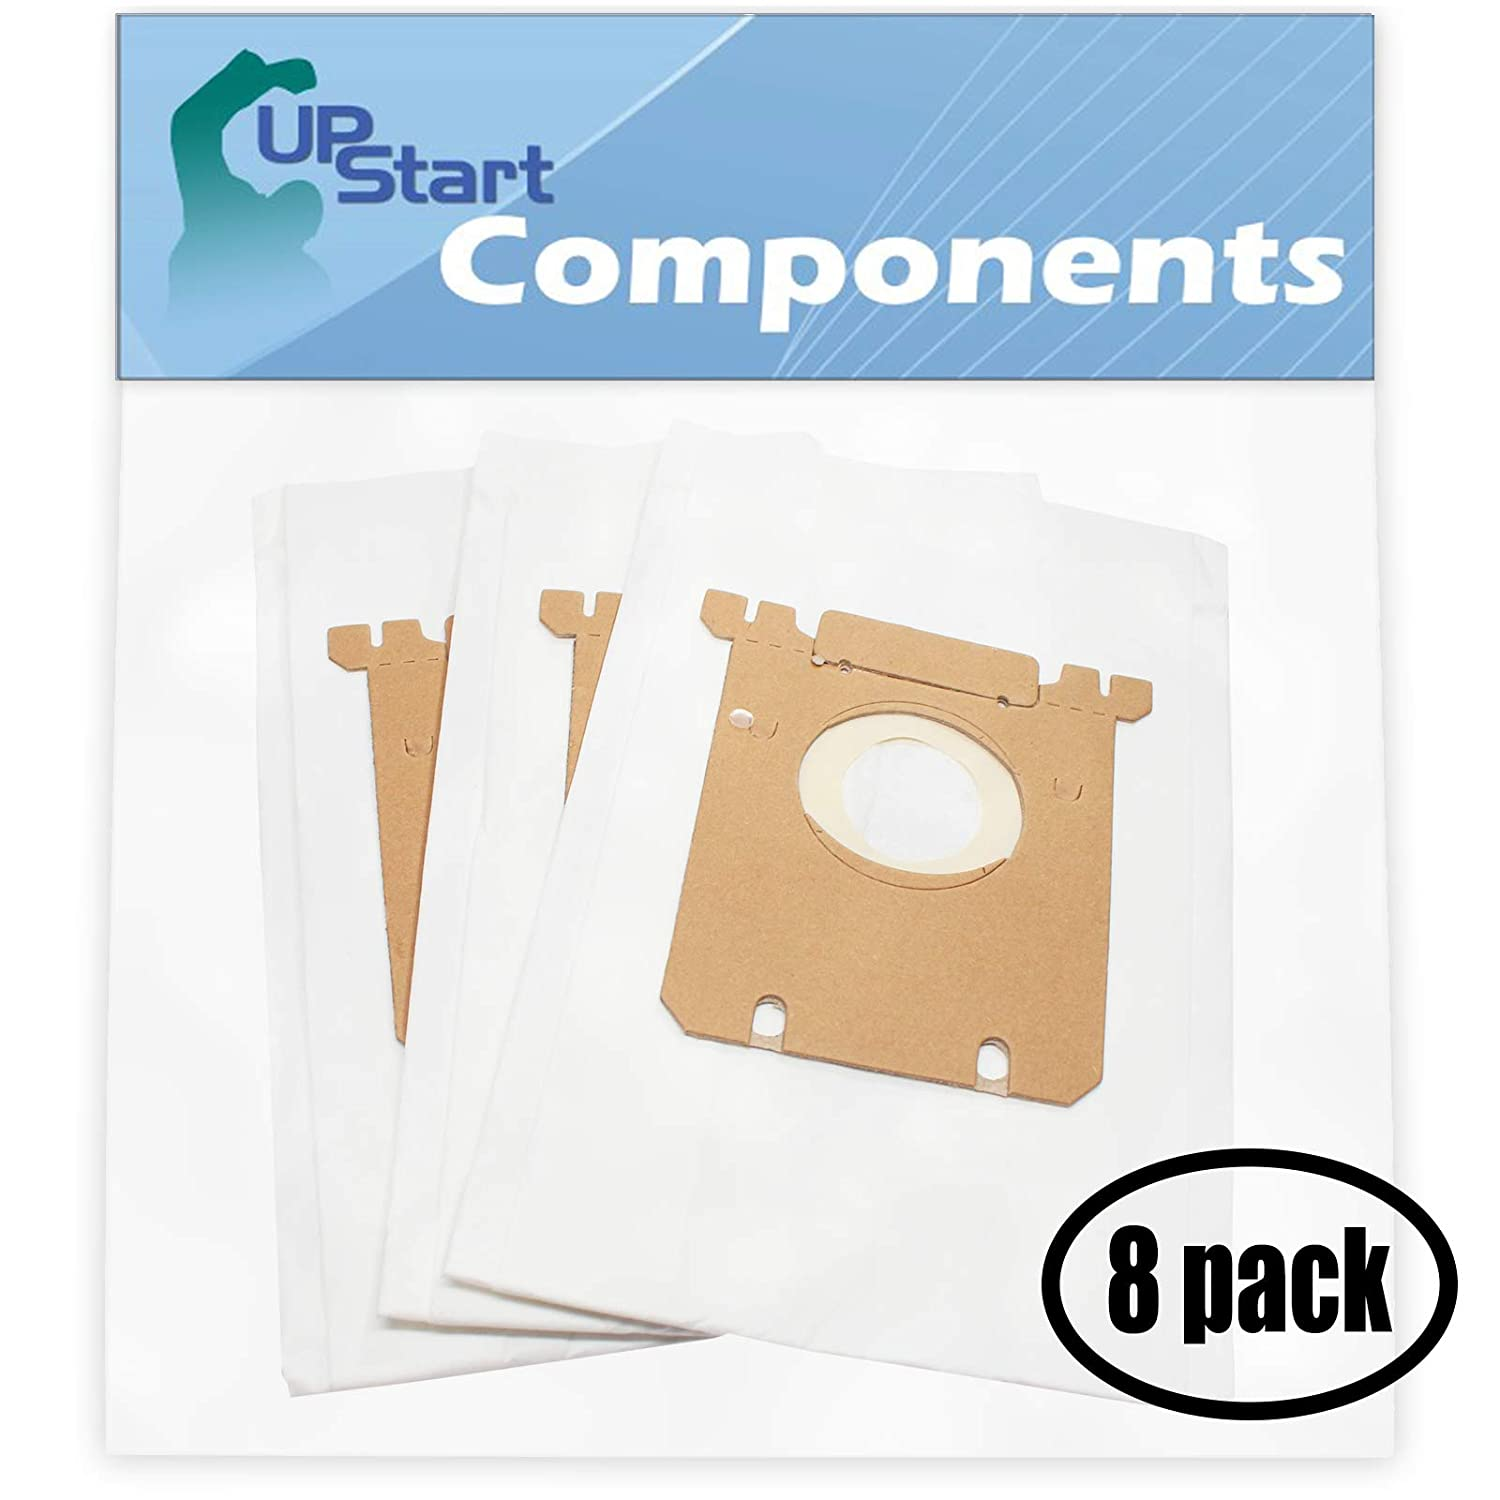 UpStart Battery 24 Replacement for Eureka 61230D Style S Vacuum Bags - Compatible with Eureka 61230F, OX Vacuum Bags (8-Pack - 3 Vacuum Bags per Pack)